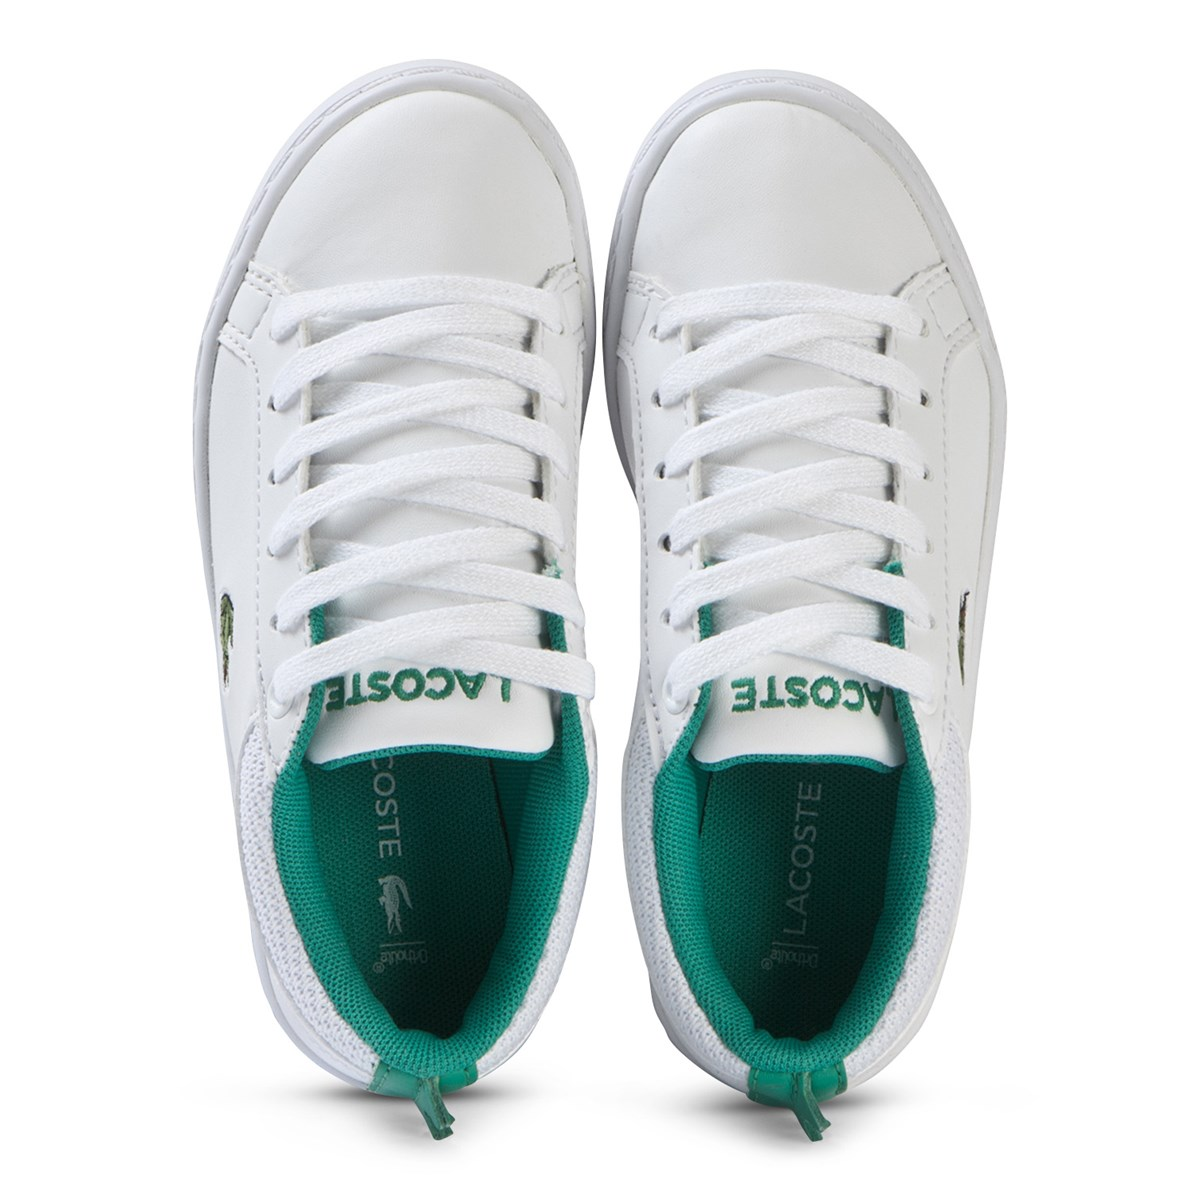 793bc2825 Lacoste - White with Green Crocodile Spine Straightset 119 Shoes -  Babyshop.com